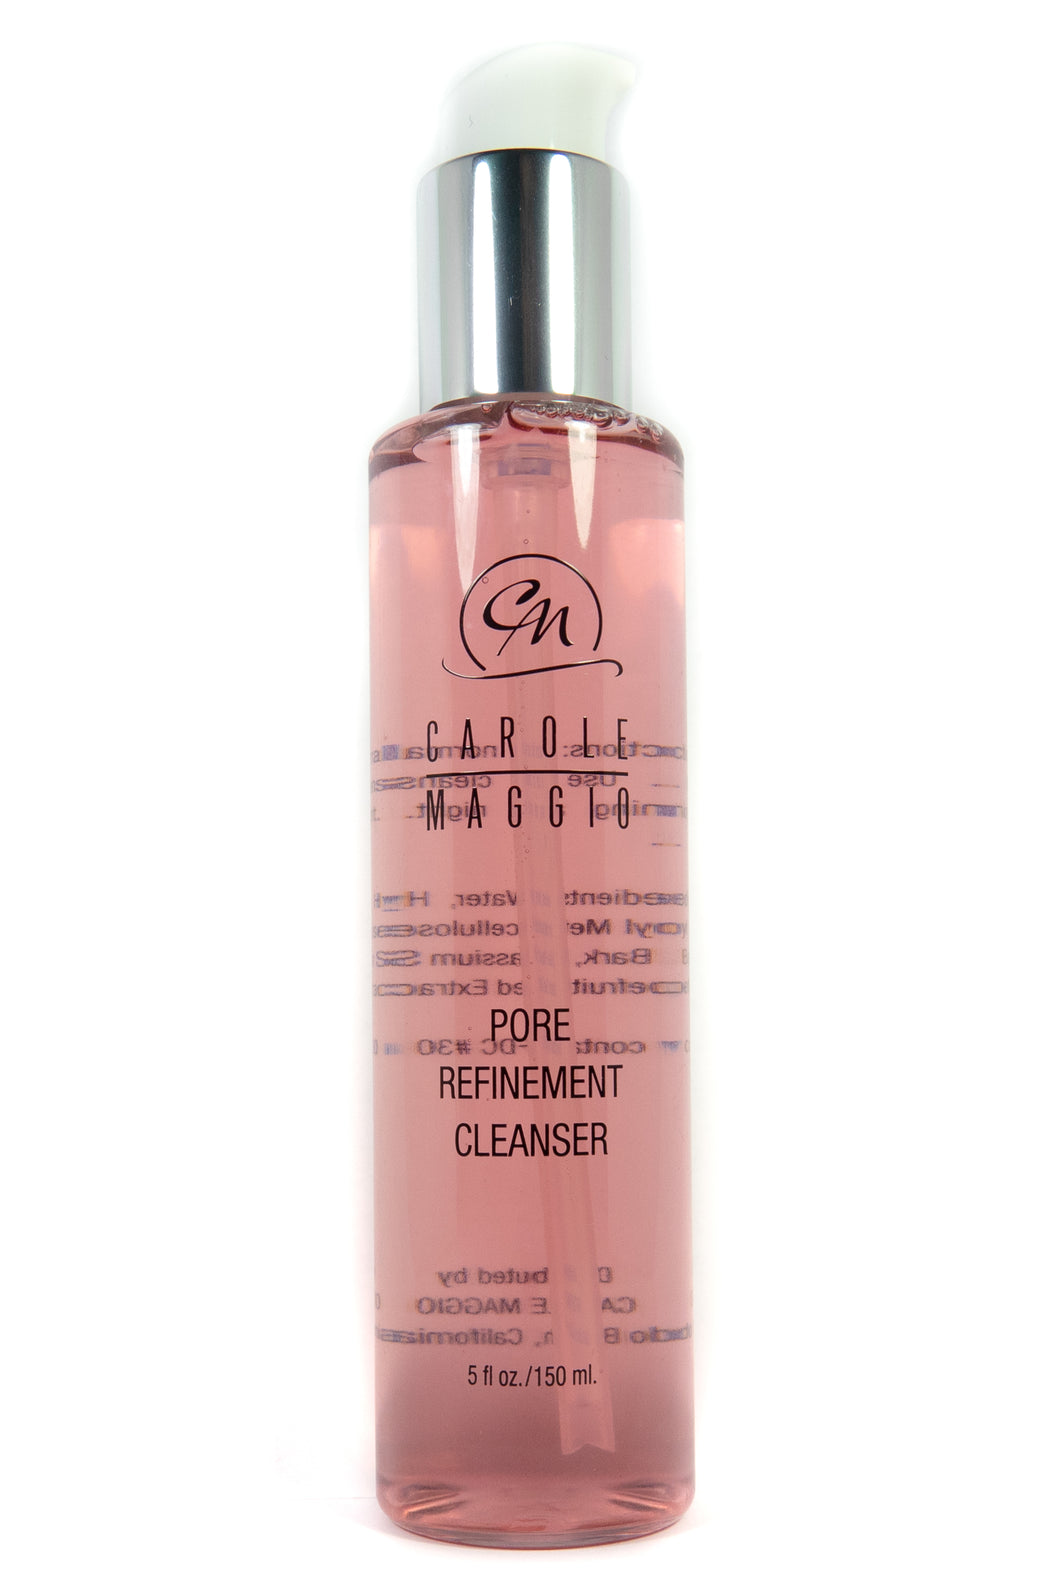 Pore Refinement Cleanser